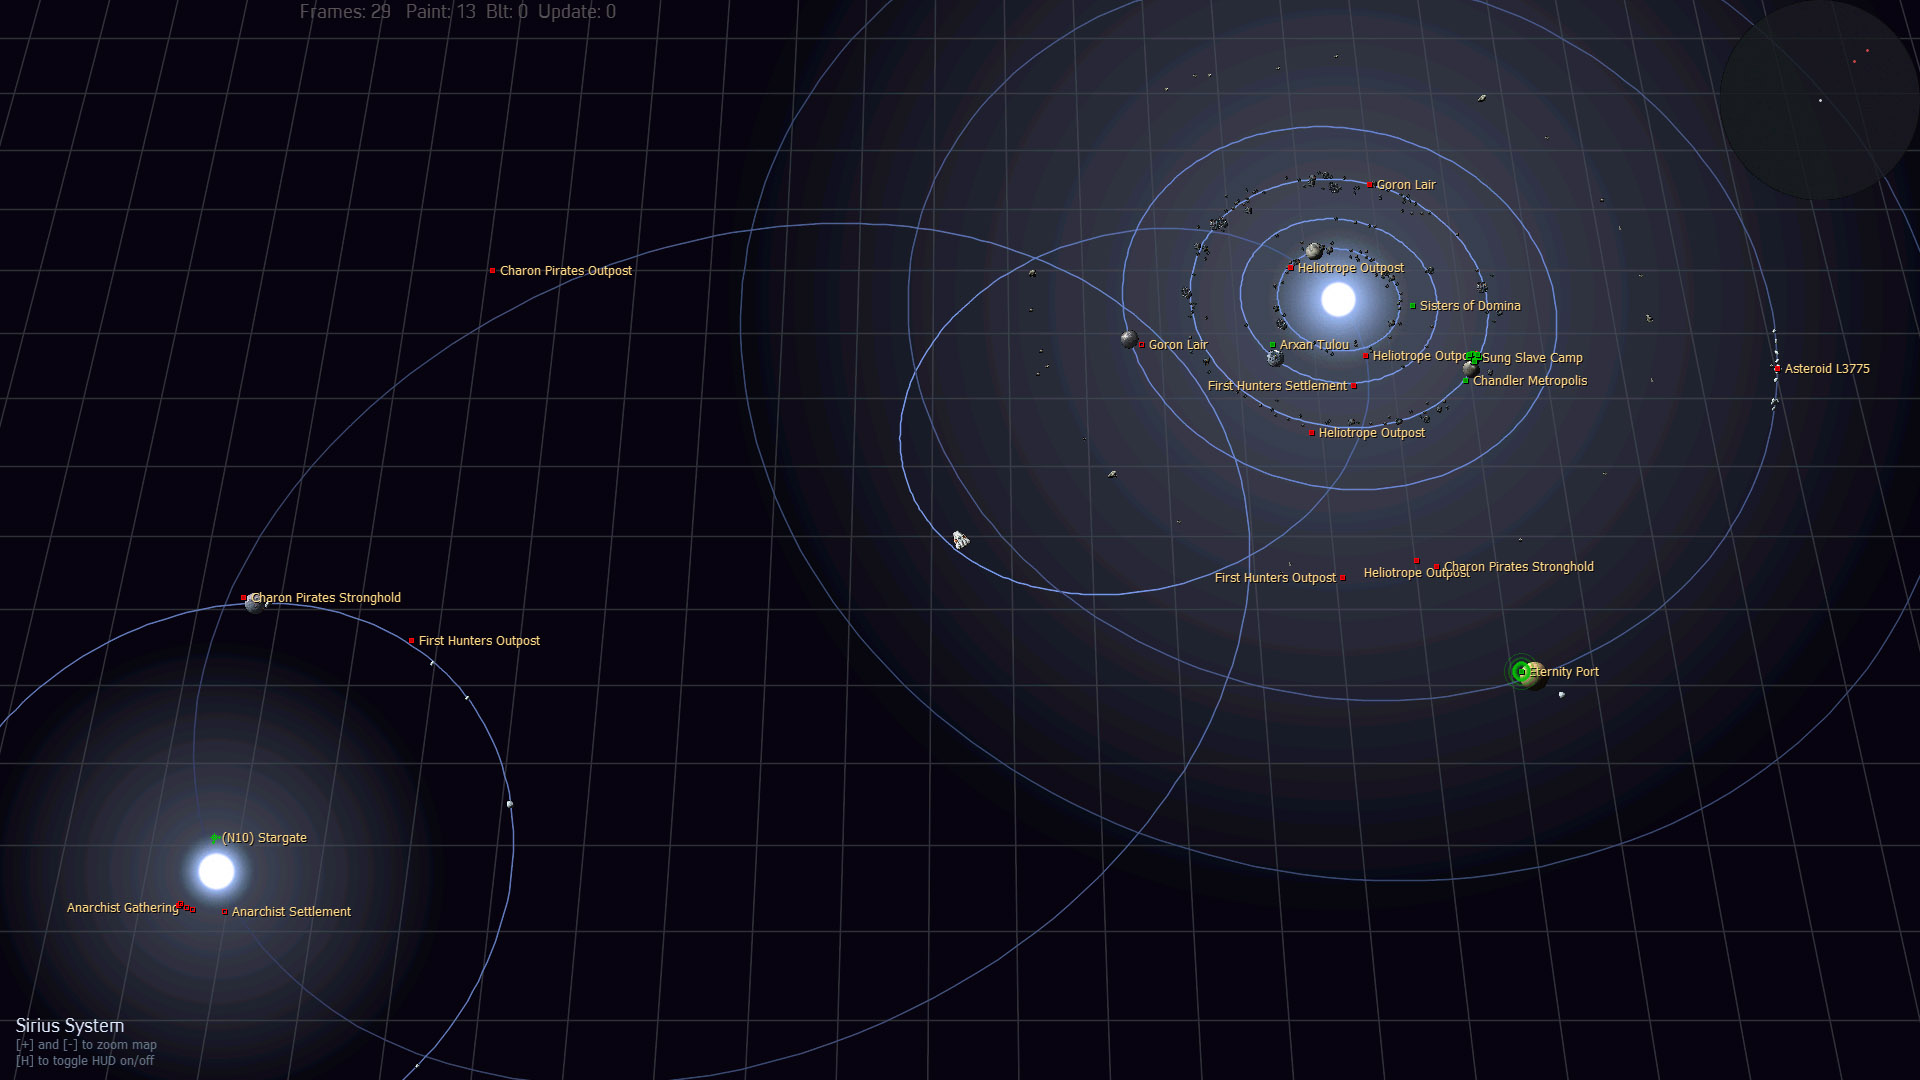 sirius star system planets page 2 pics about space